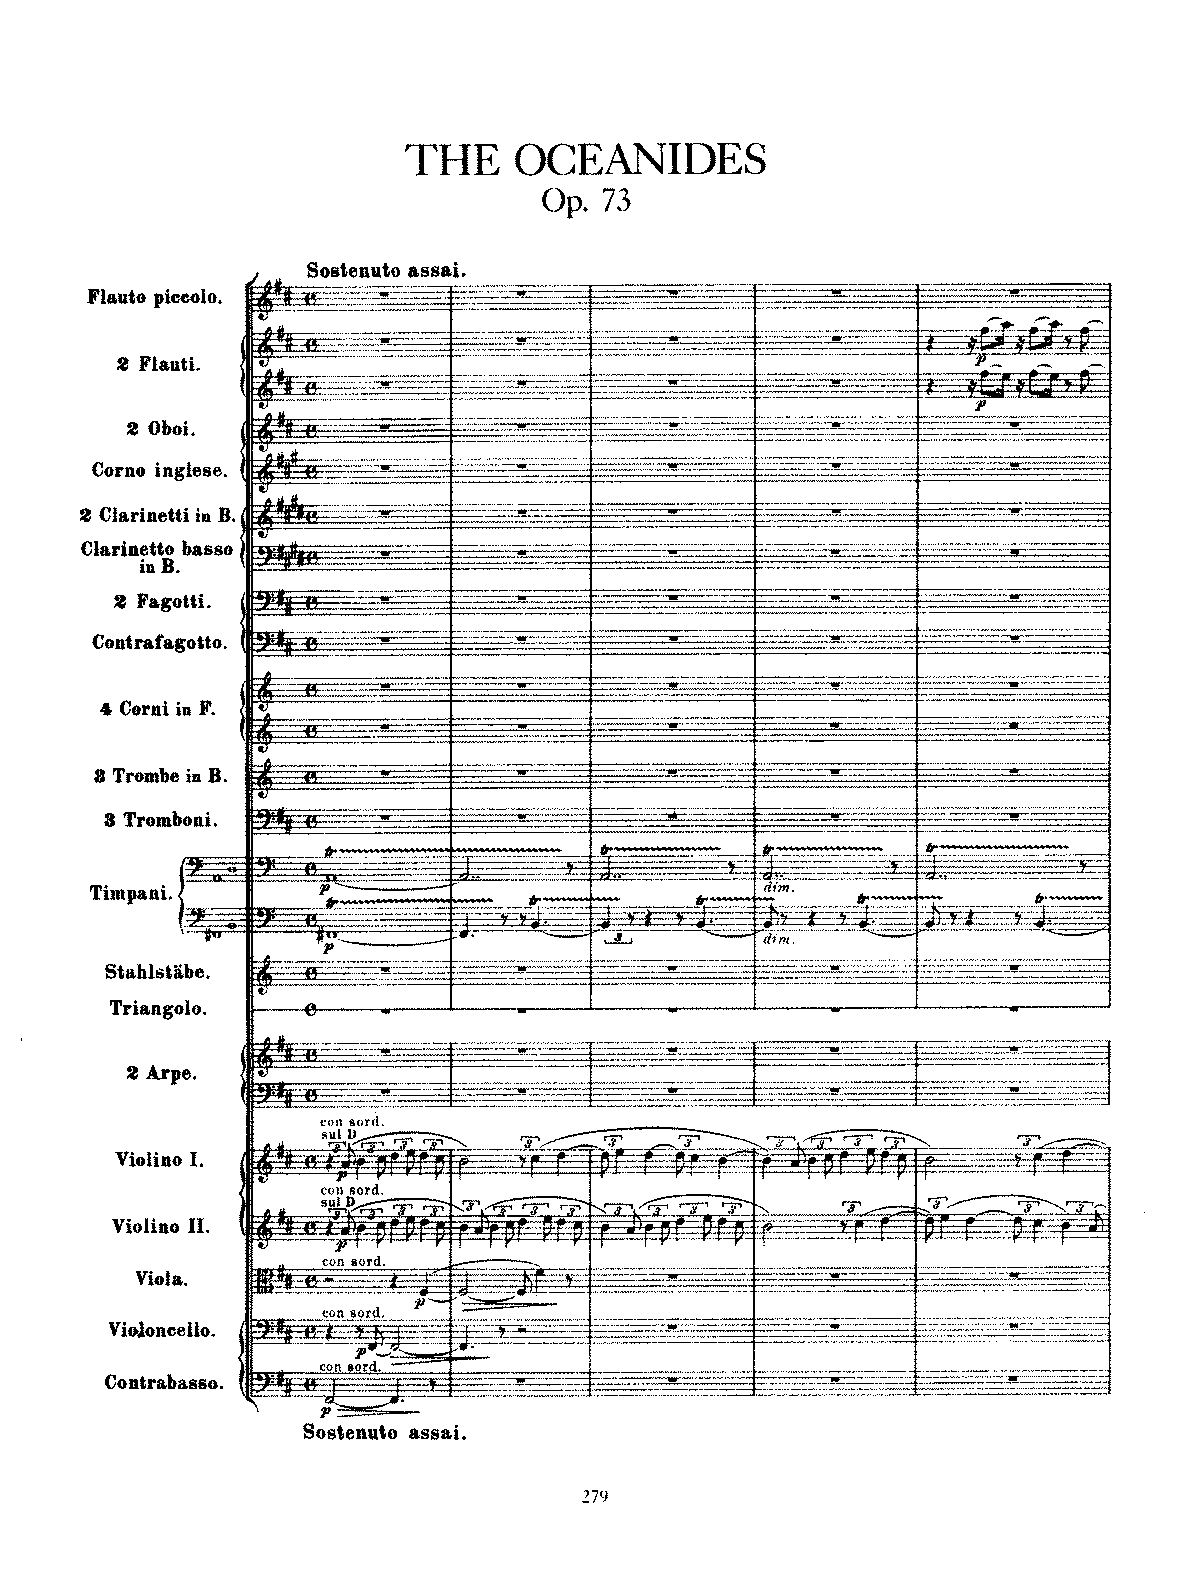 Sibelius - The Oceanides, Op.73 (orch. score).pdf